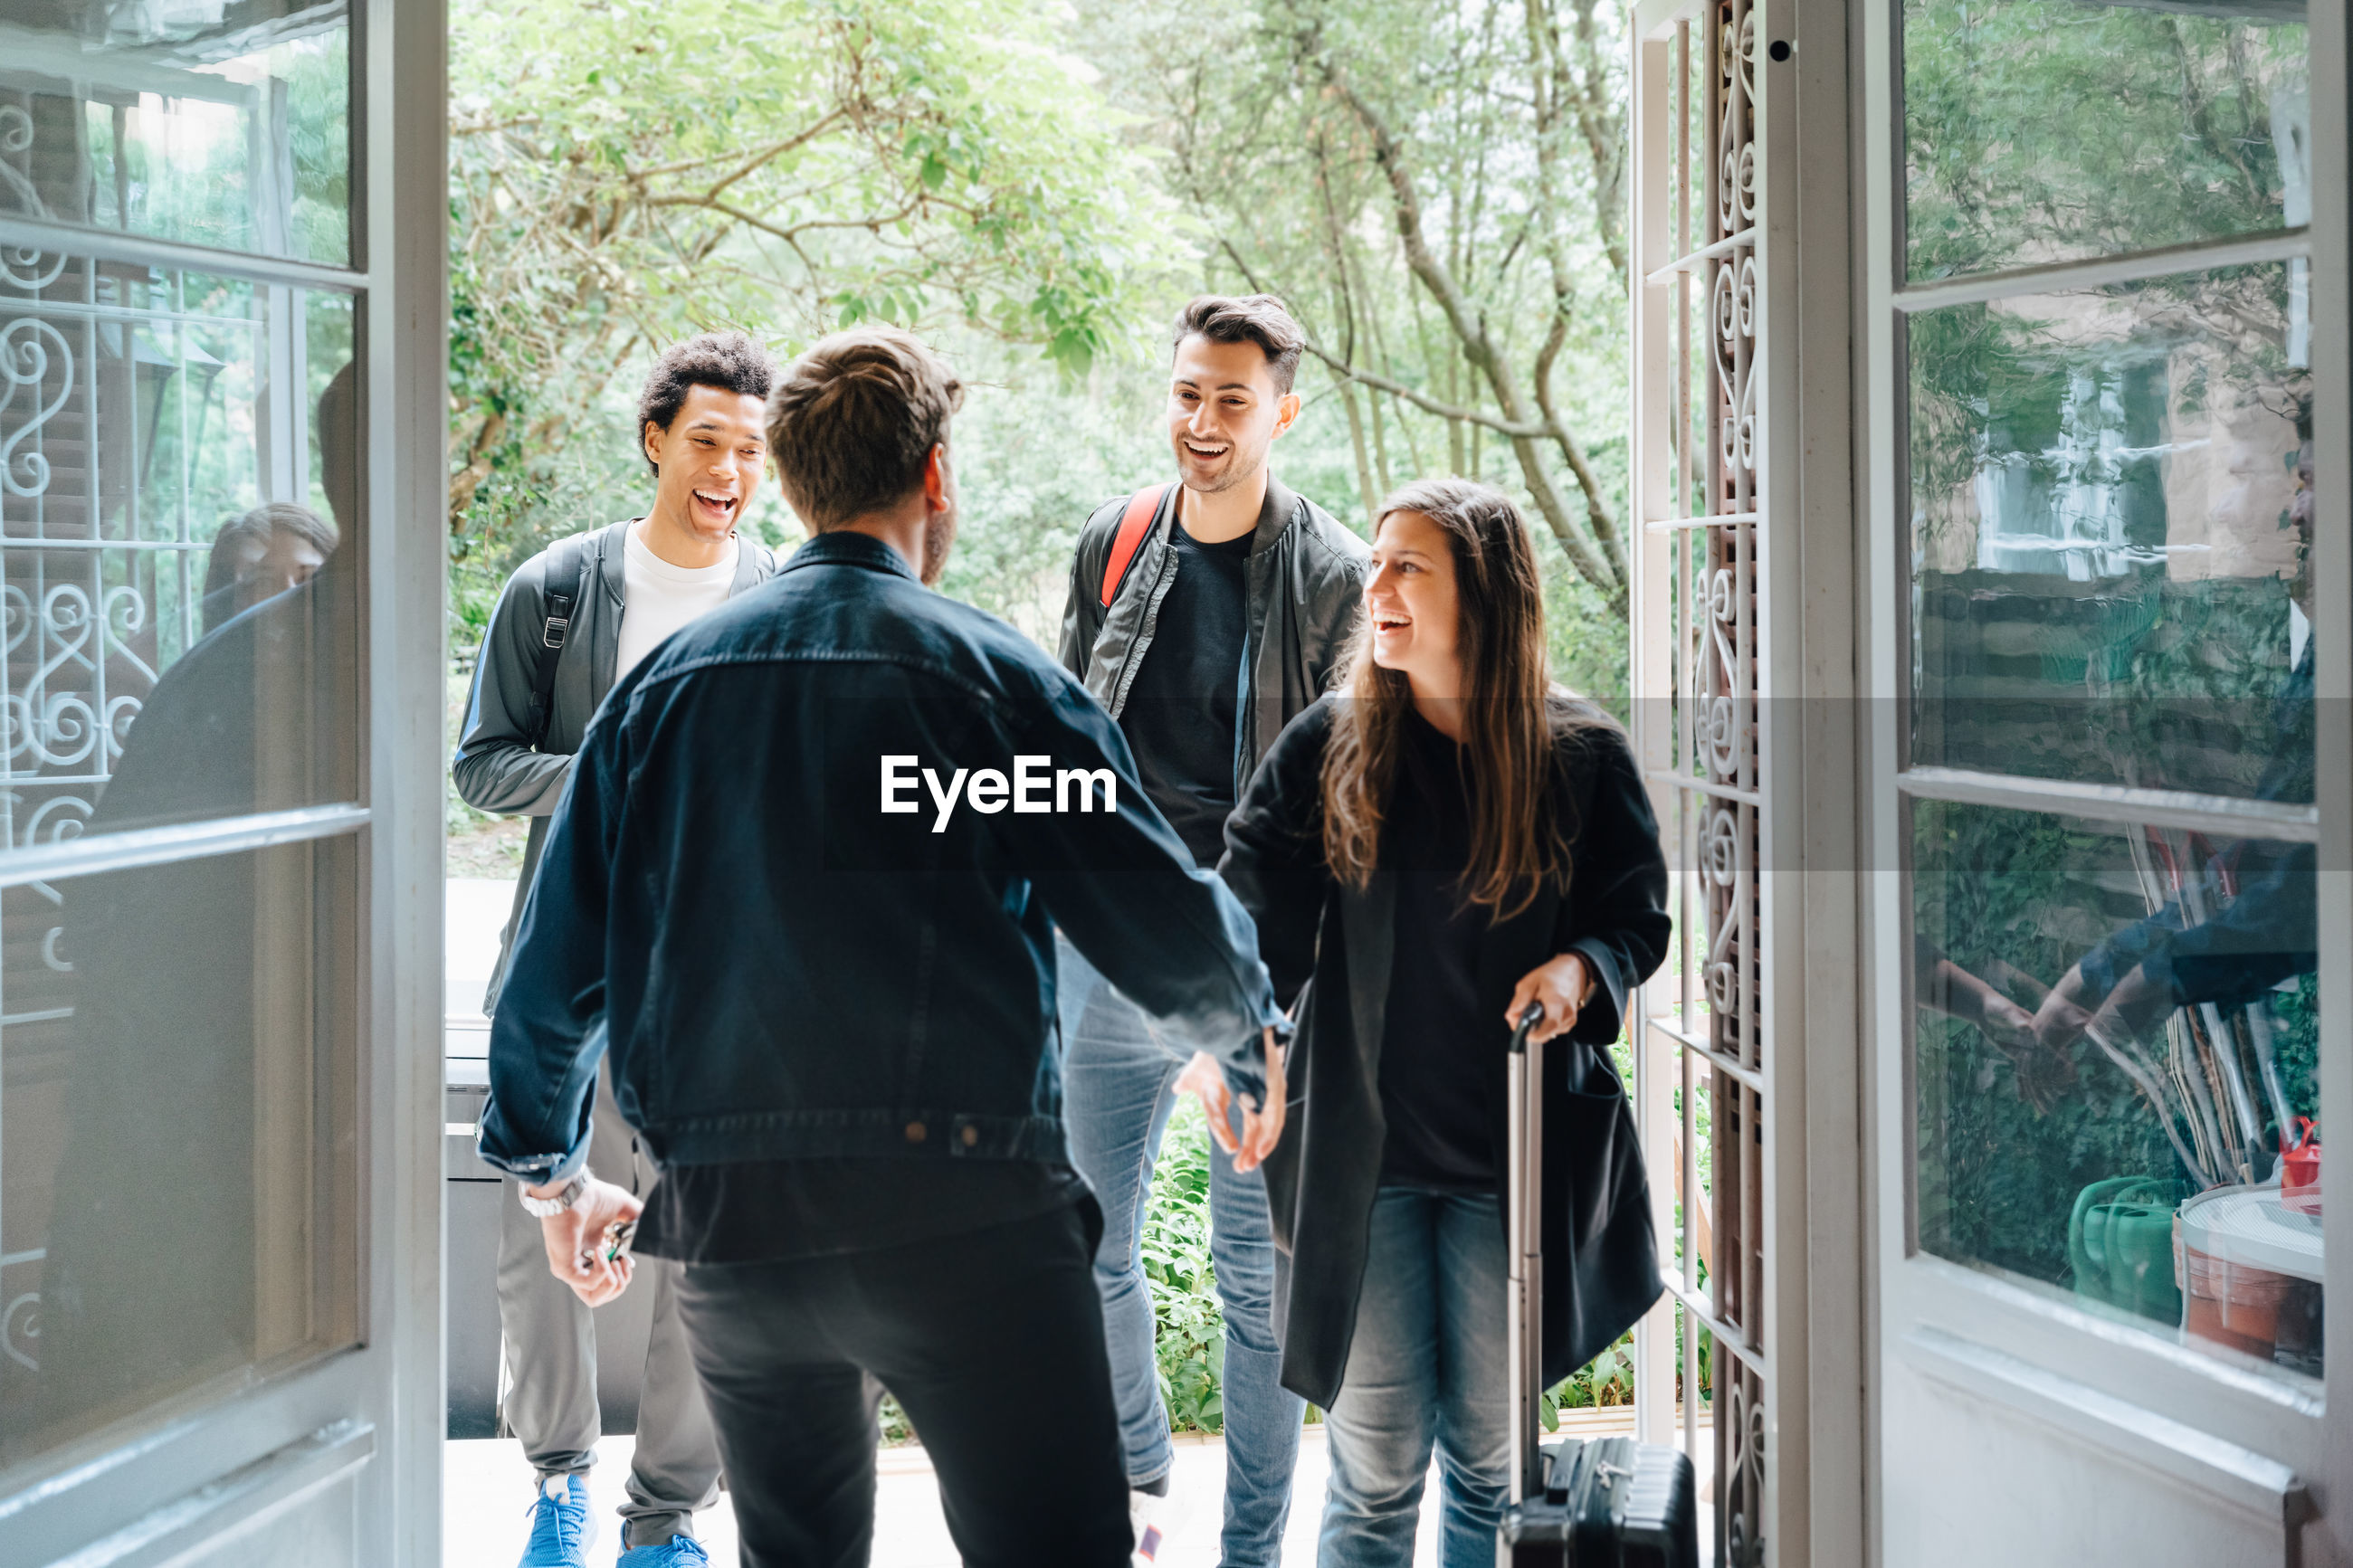 PEOPLE STANDING BY WINDOW WITH TEXT